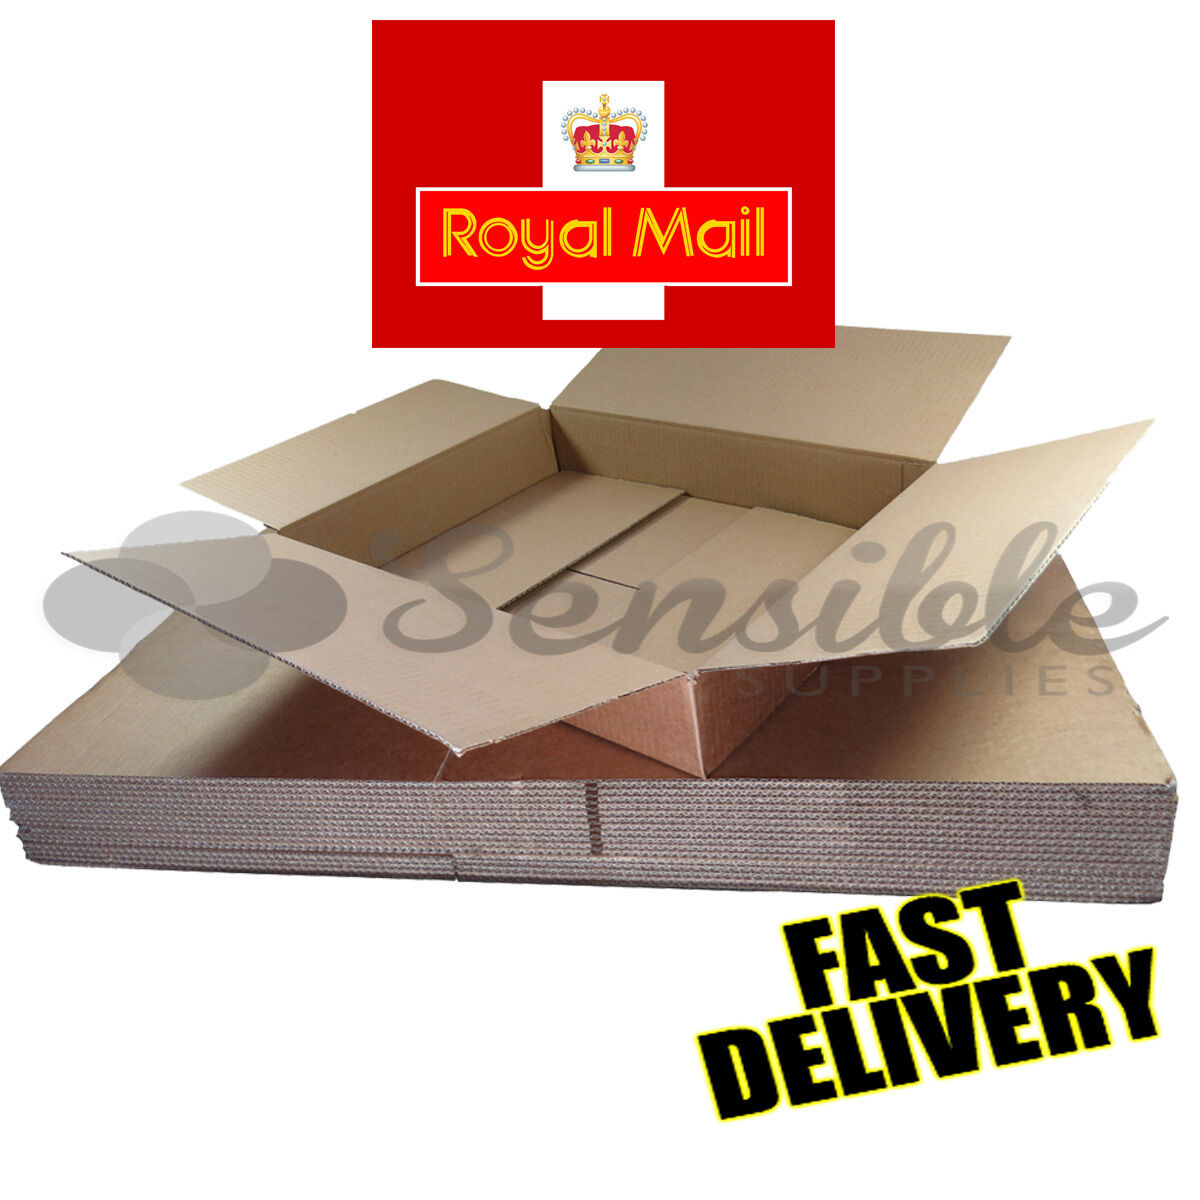 HISTORIC ROYAL MAIL MAXIMUM SIZE SMALL PARCEL CARDBOARD BOXES 449x349x79mm